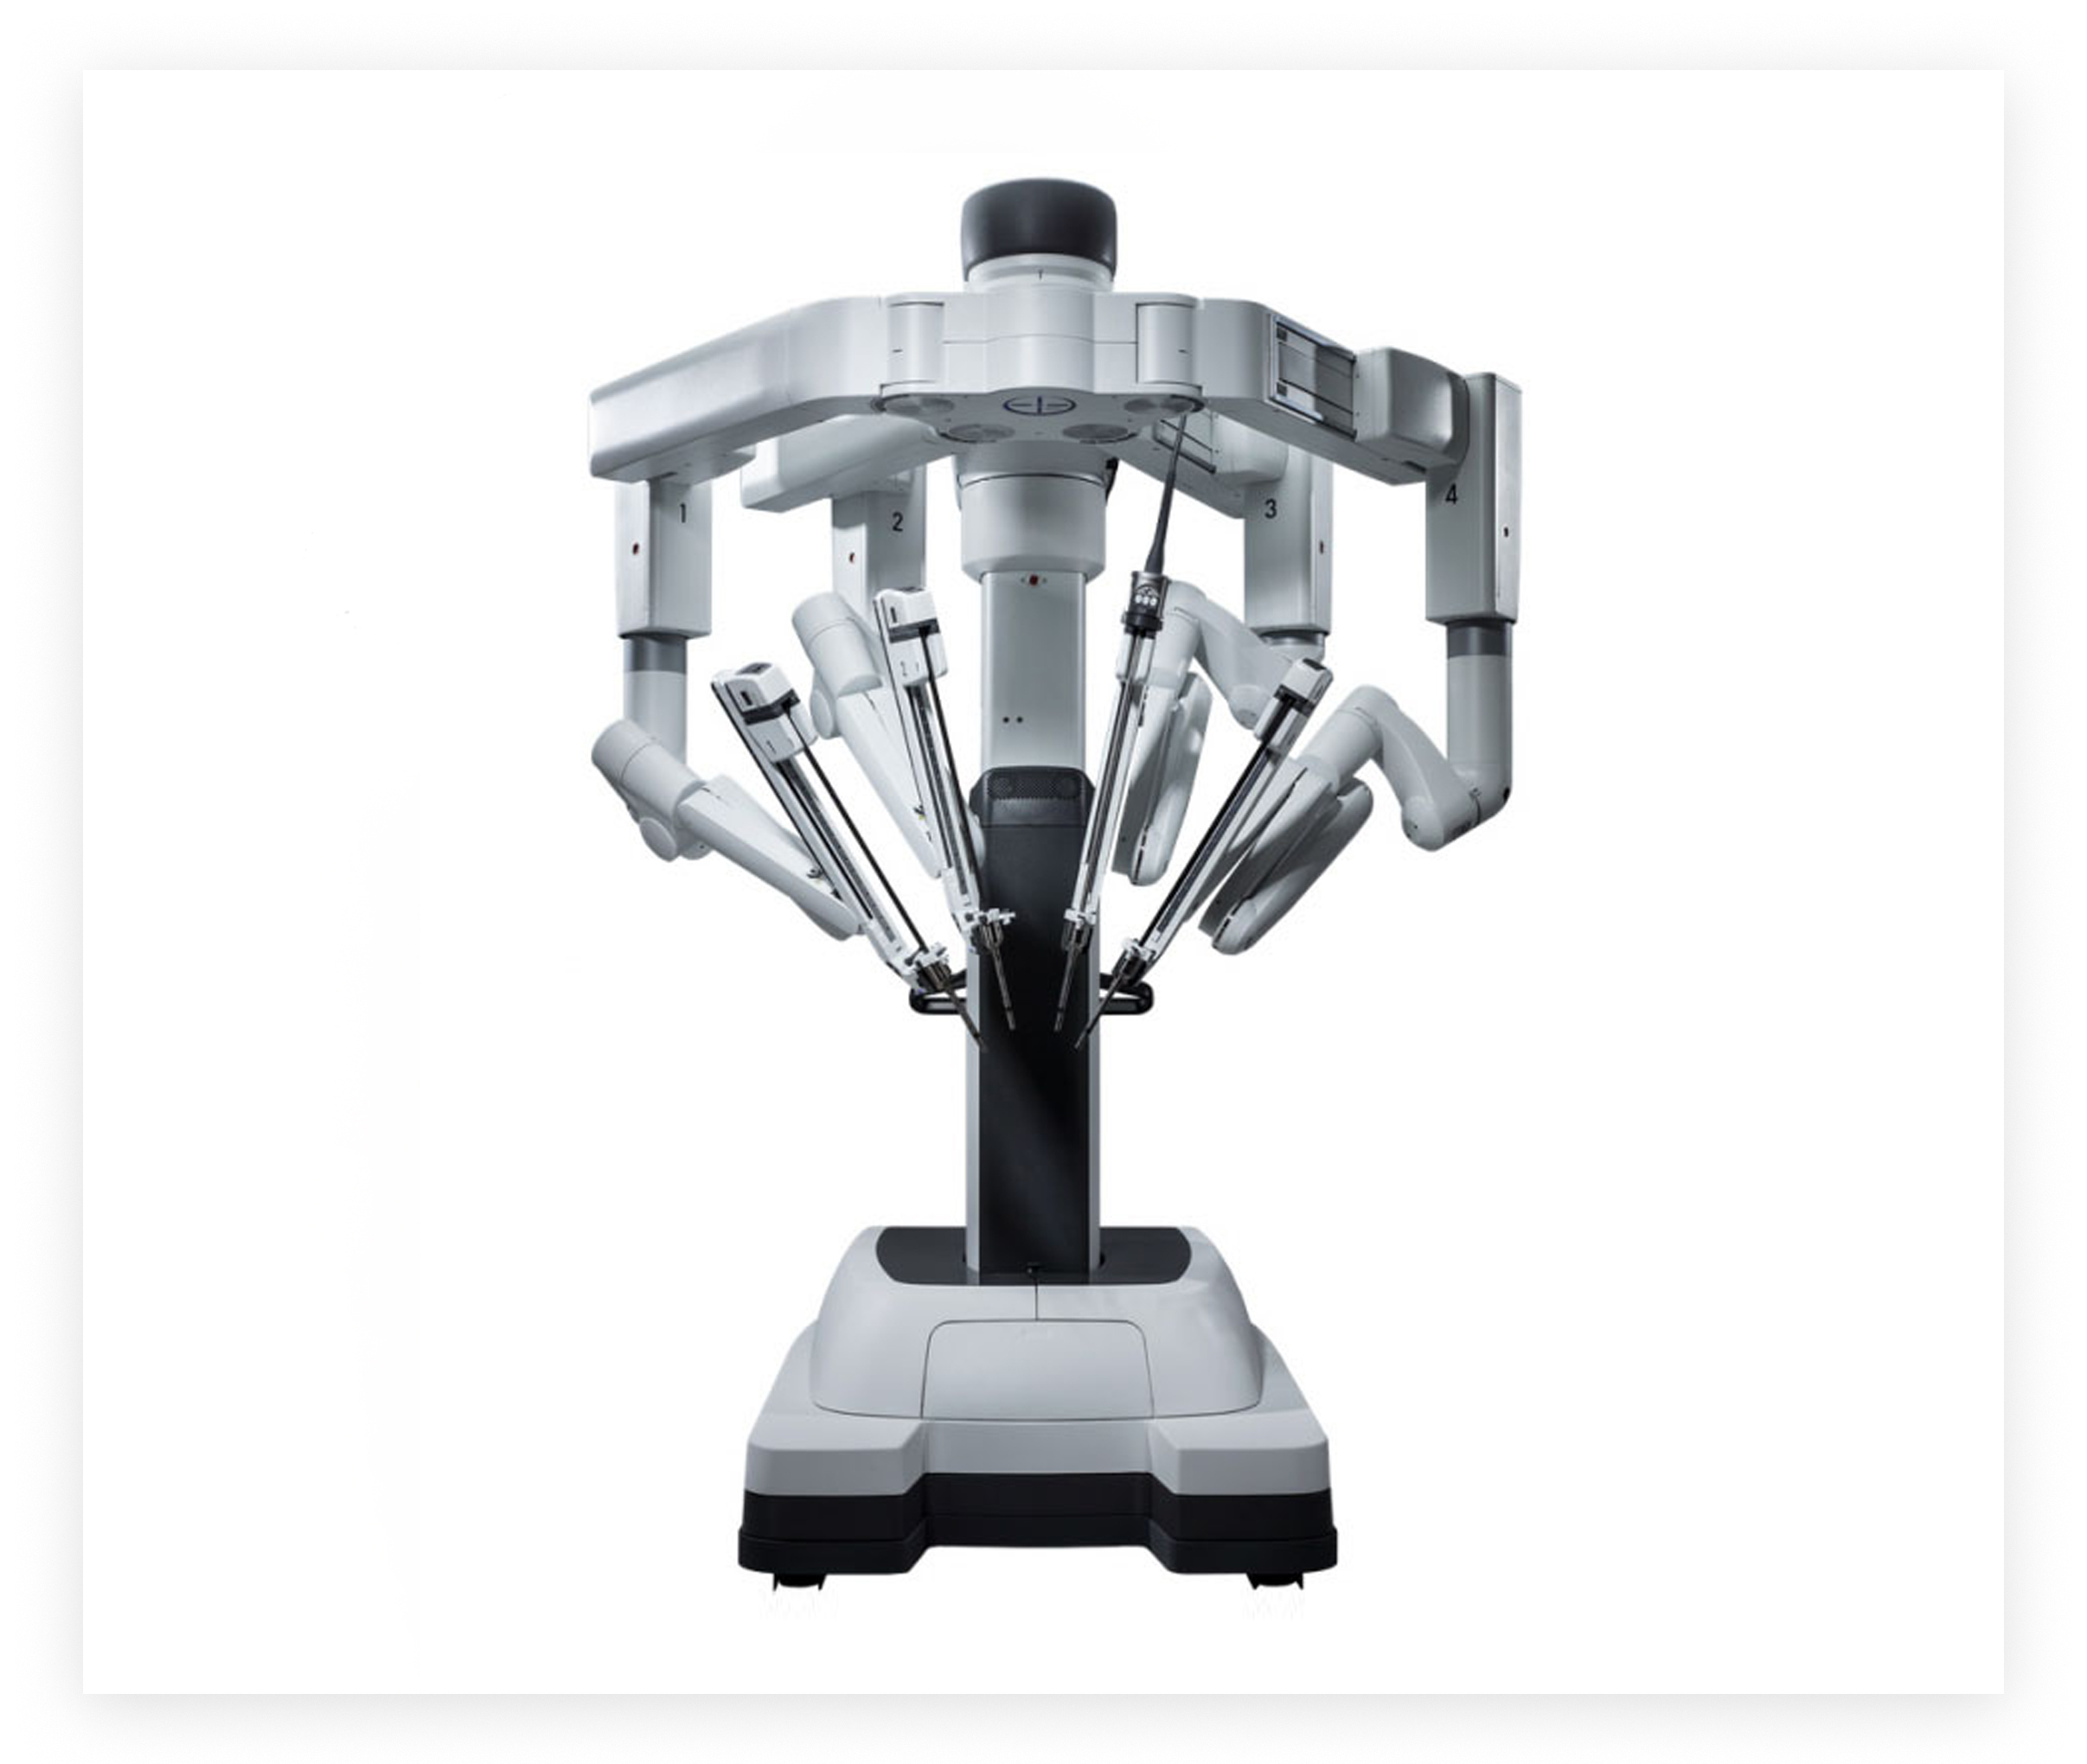 Robotic Surgical Technology - The robotic surgical platform allows complex surgery to be performed in a minimally invasive fashion. This technology provides a safer and less painful option for radical prostatectomy & partial nephrectomy treatments with fewer complications and a quicker post operative recovery.